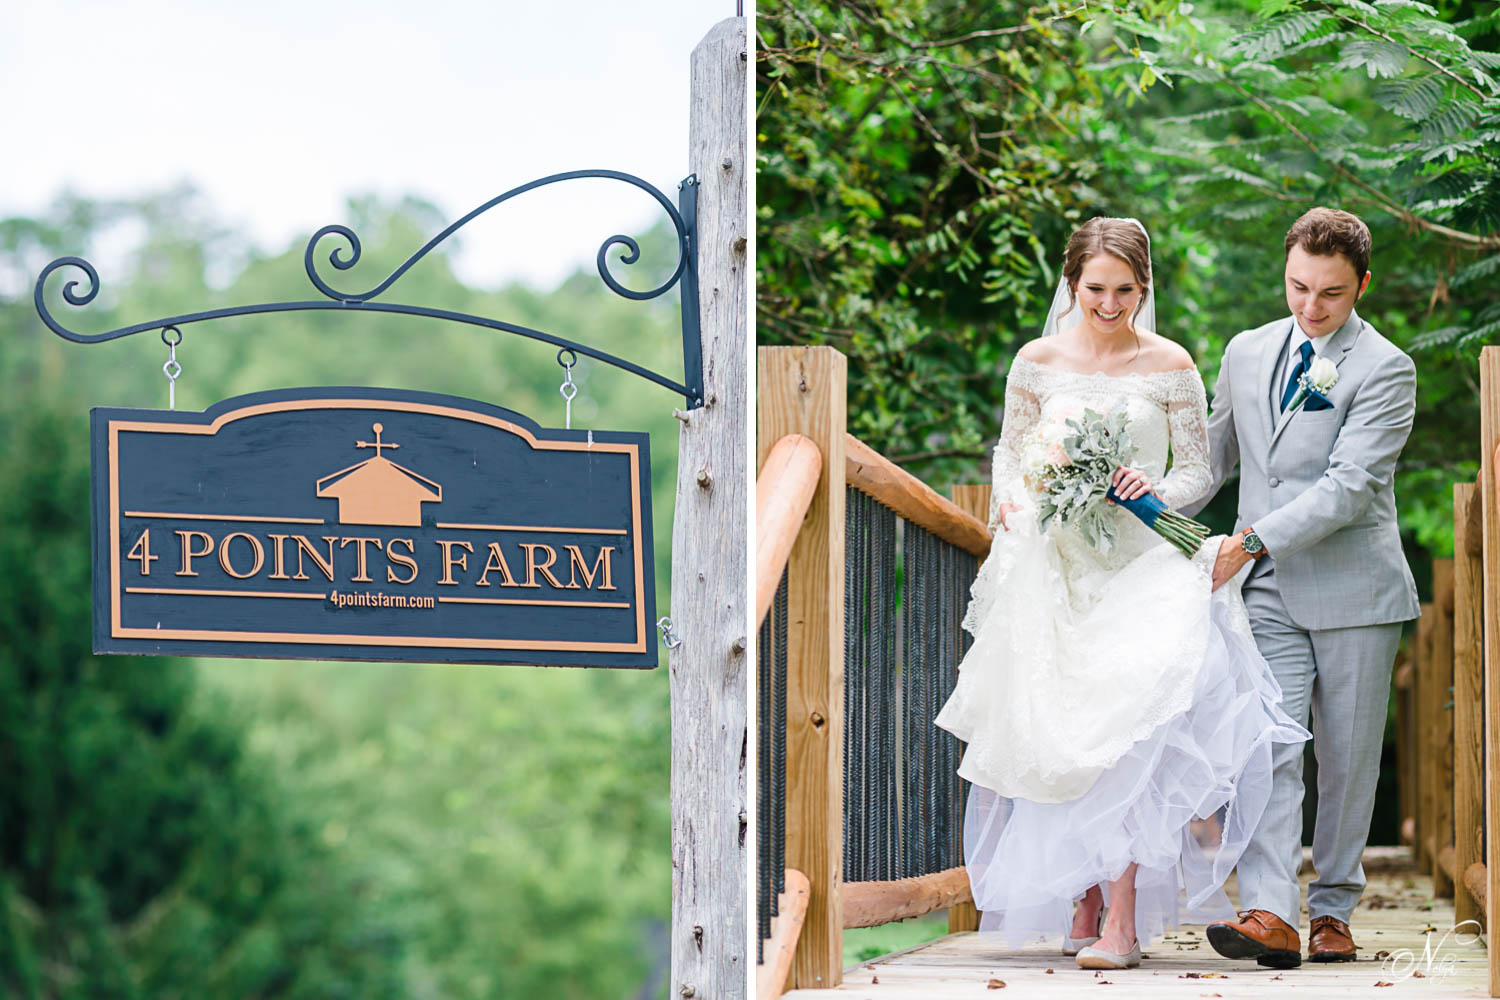 iron sign at 4 points farm in Gatlinburg TN. And bride and groom outside walking across wooden walking at the venuebridge